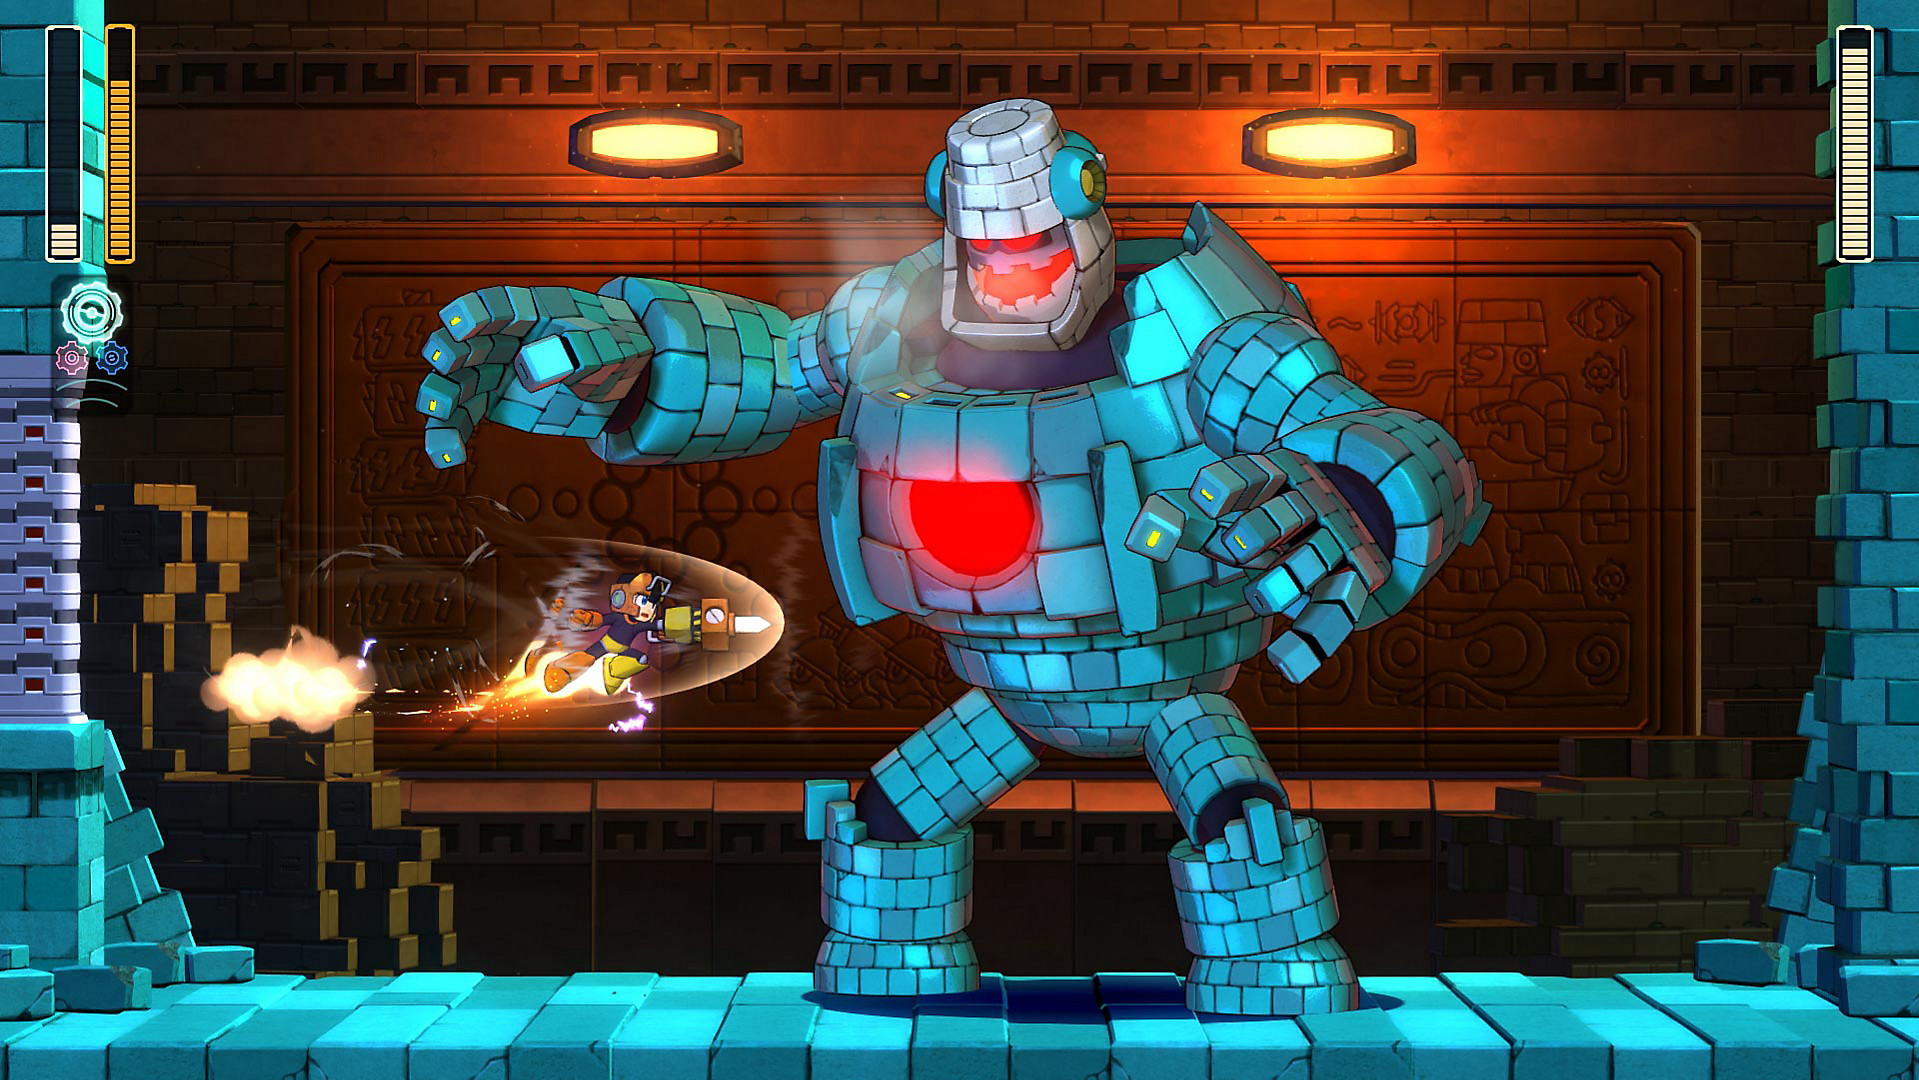 mega-man-11-screenshot-04-ps4-us-02oct20